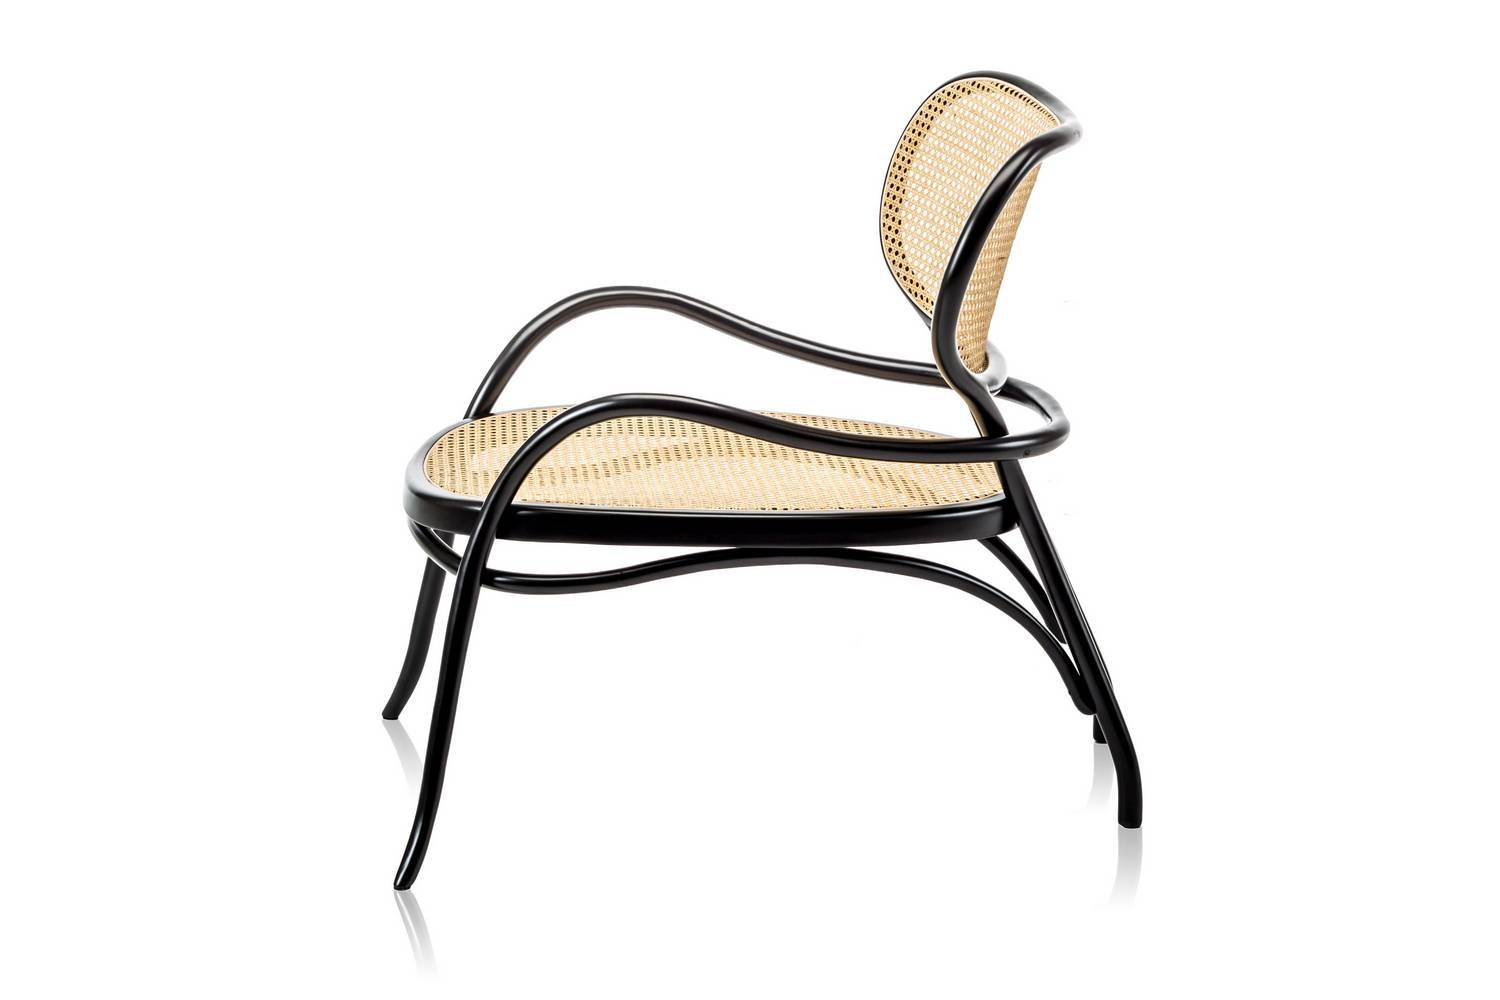 Lehnstuhl Armchair by Nigel Coates for Wiener GTV Design